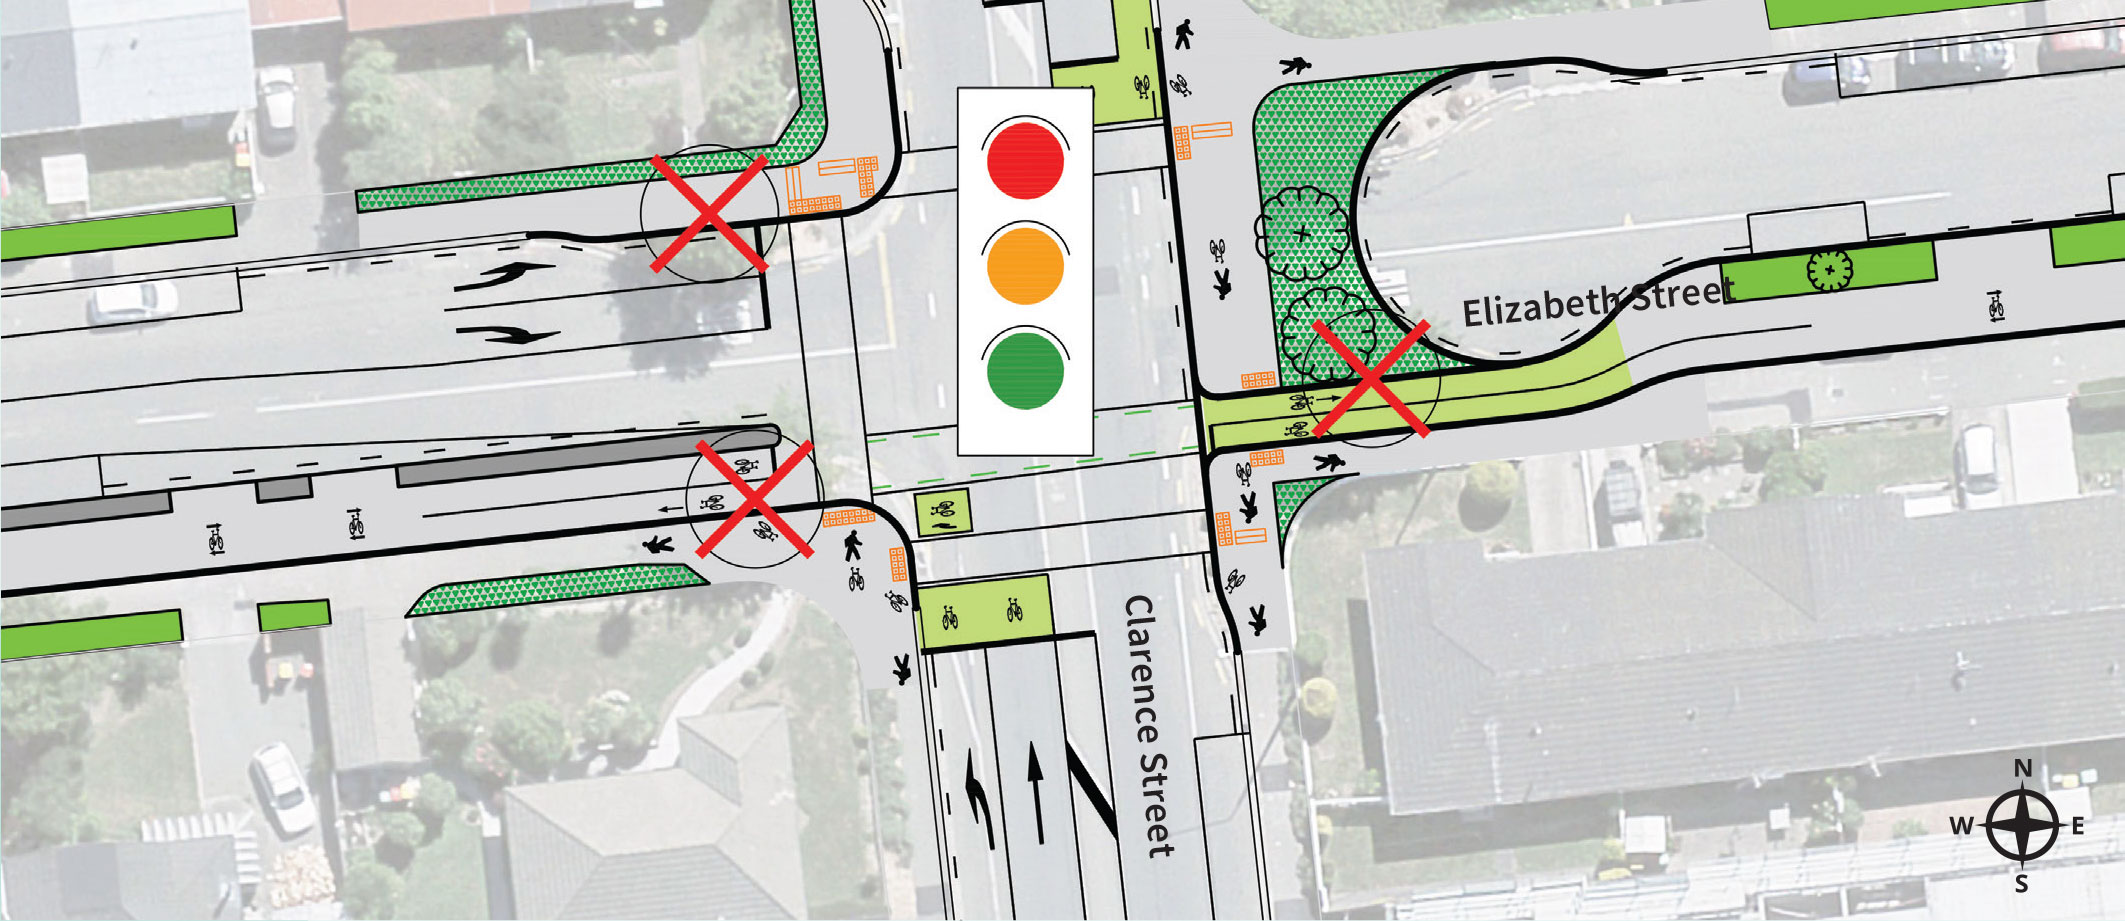 'Elizabeth St cul-de-sac at and new signalised intersection